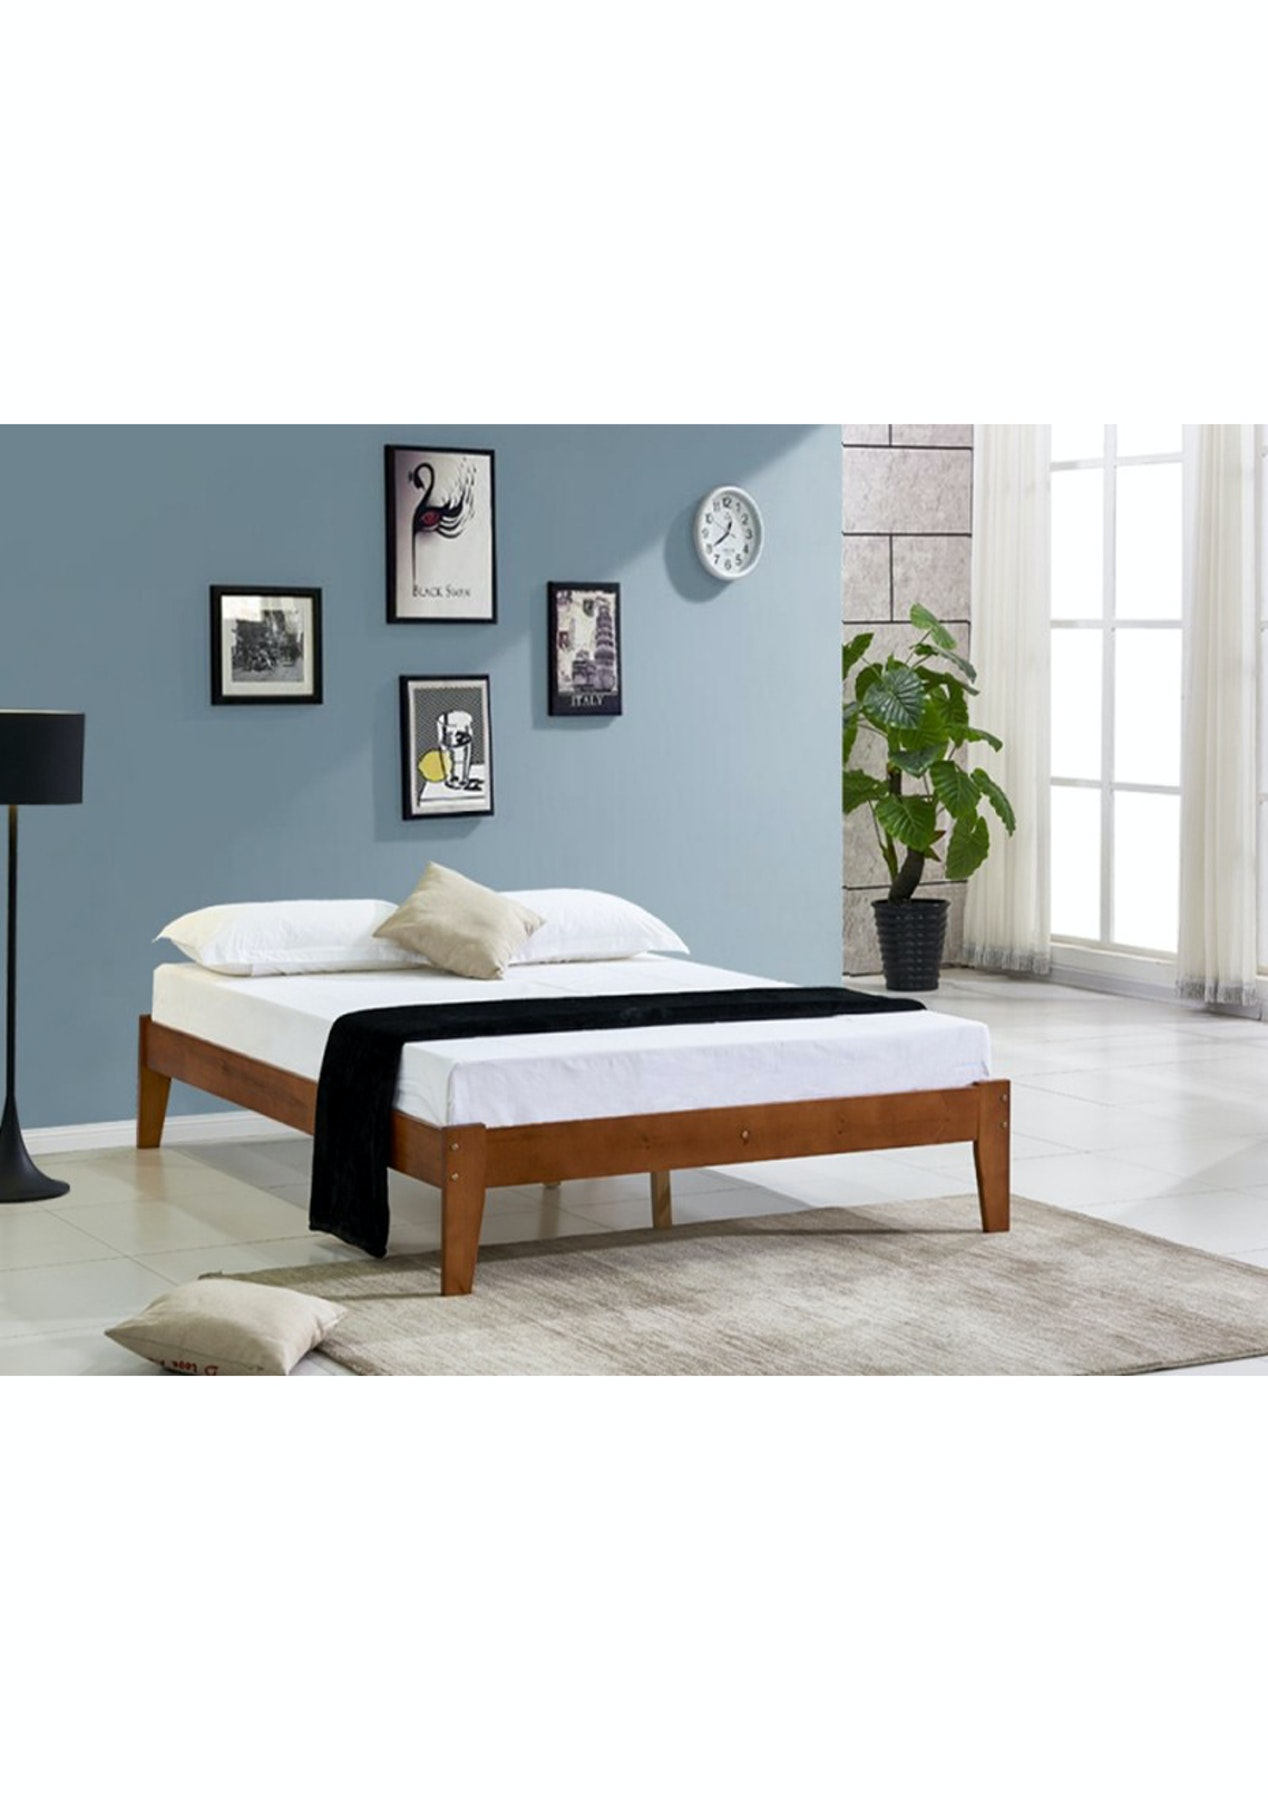 Meri Wooden Slat Bed Base Queen Oak Summer Bed Refresh Onceit